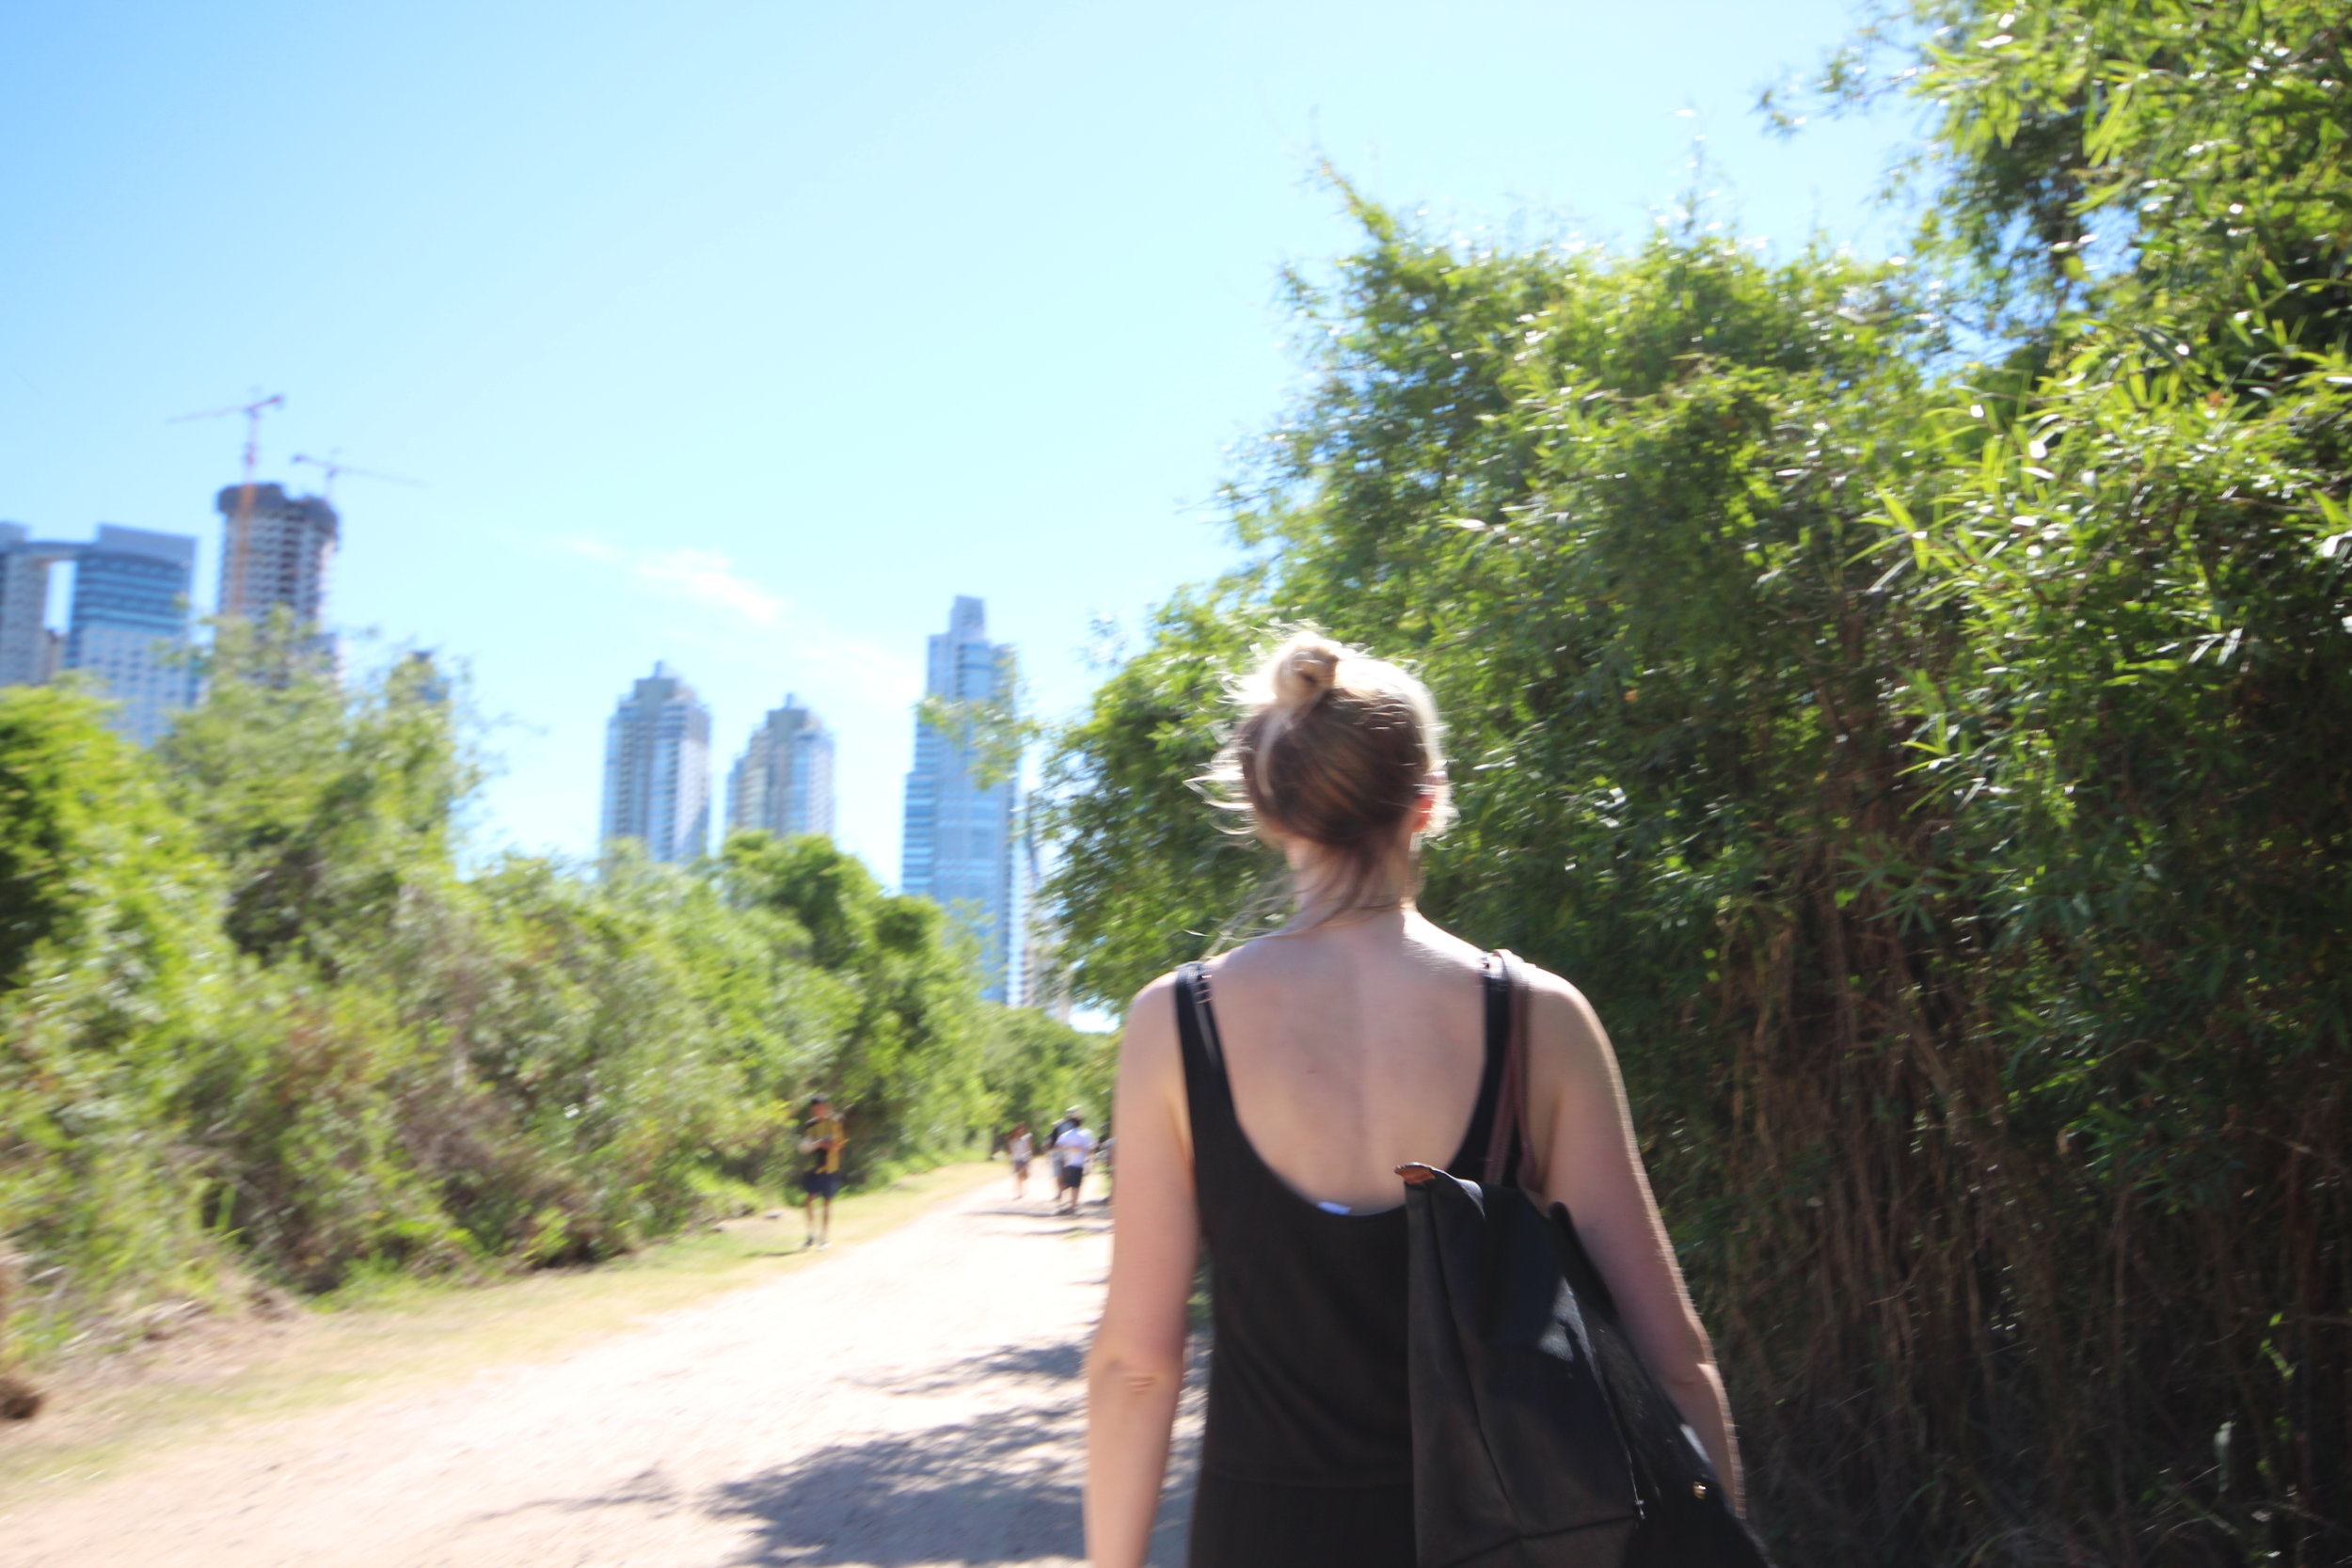 Walking the Costanera